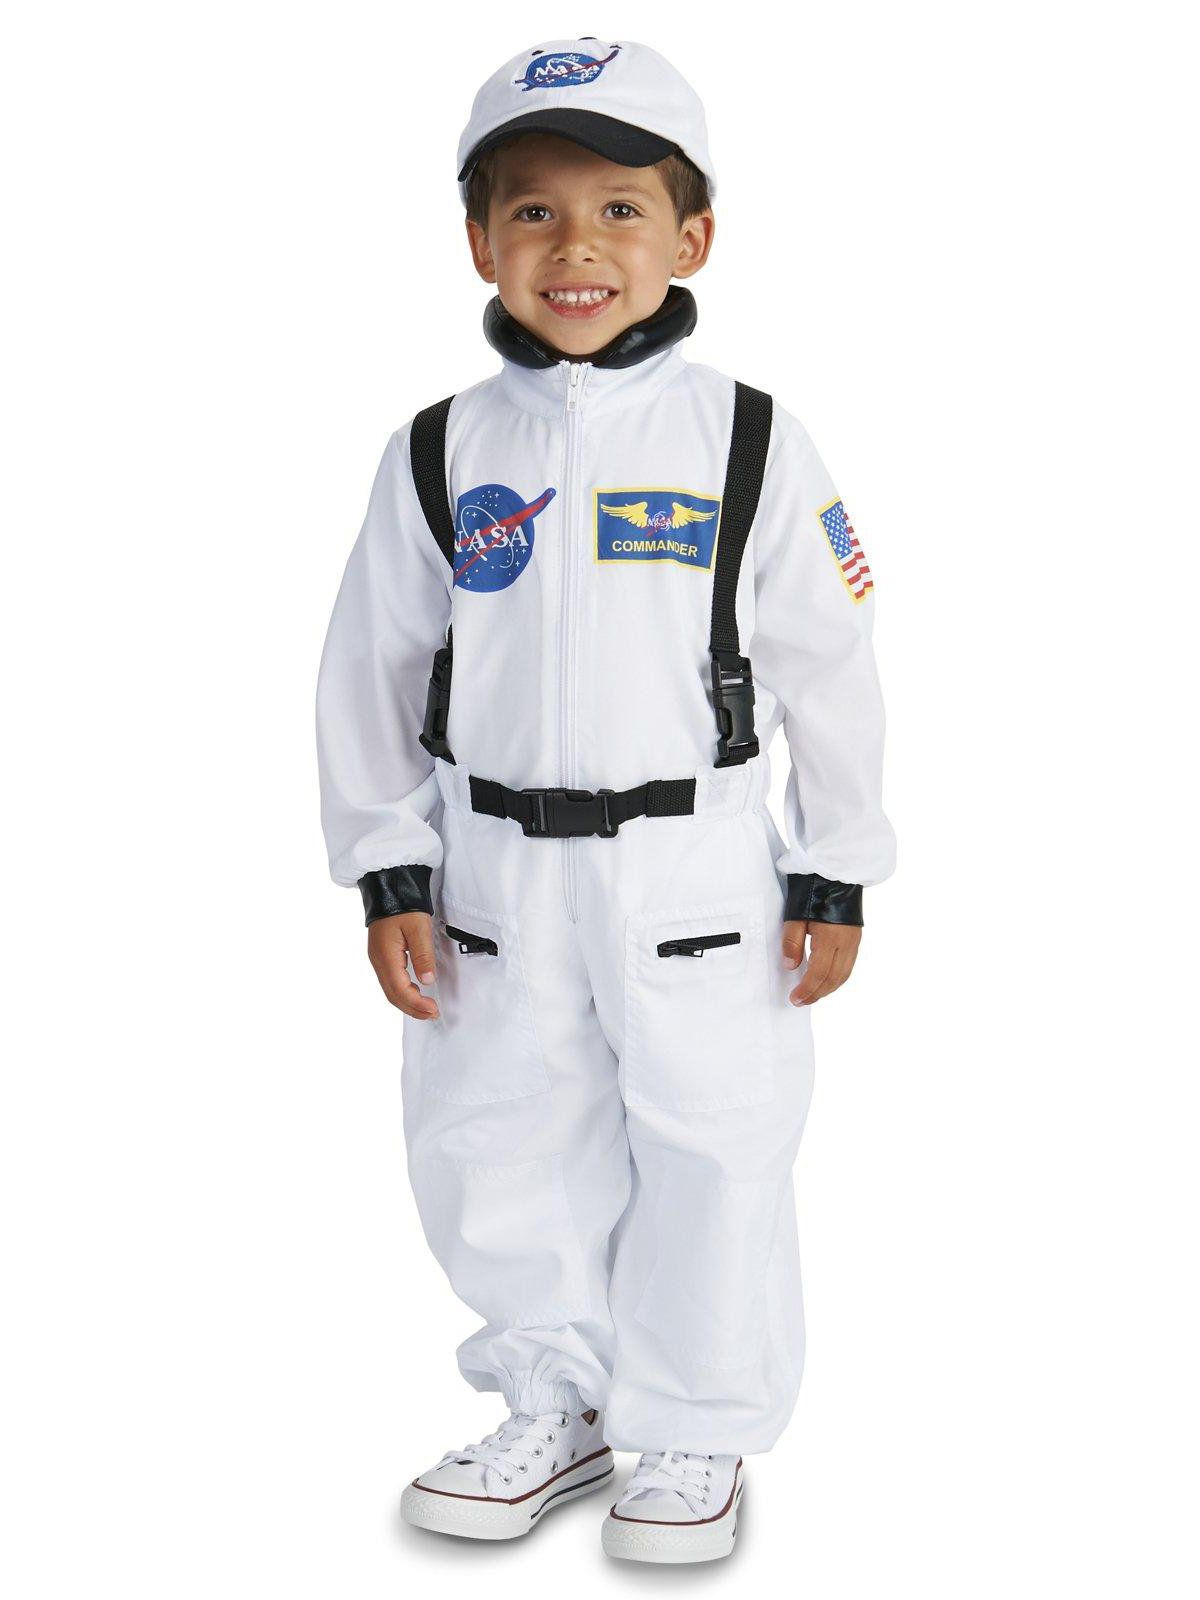 White Astronaut Costume For Toddlers  sc 1 st  Wholesale Halloween Costumes & White Astronaut Costume For Toddlers - Baby/Toddler Costumes for ...